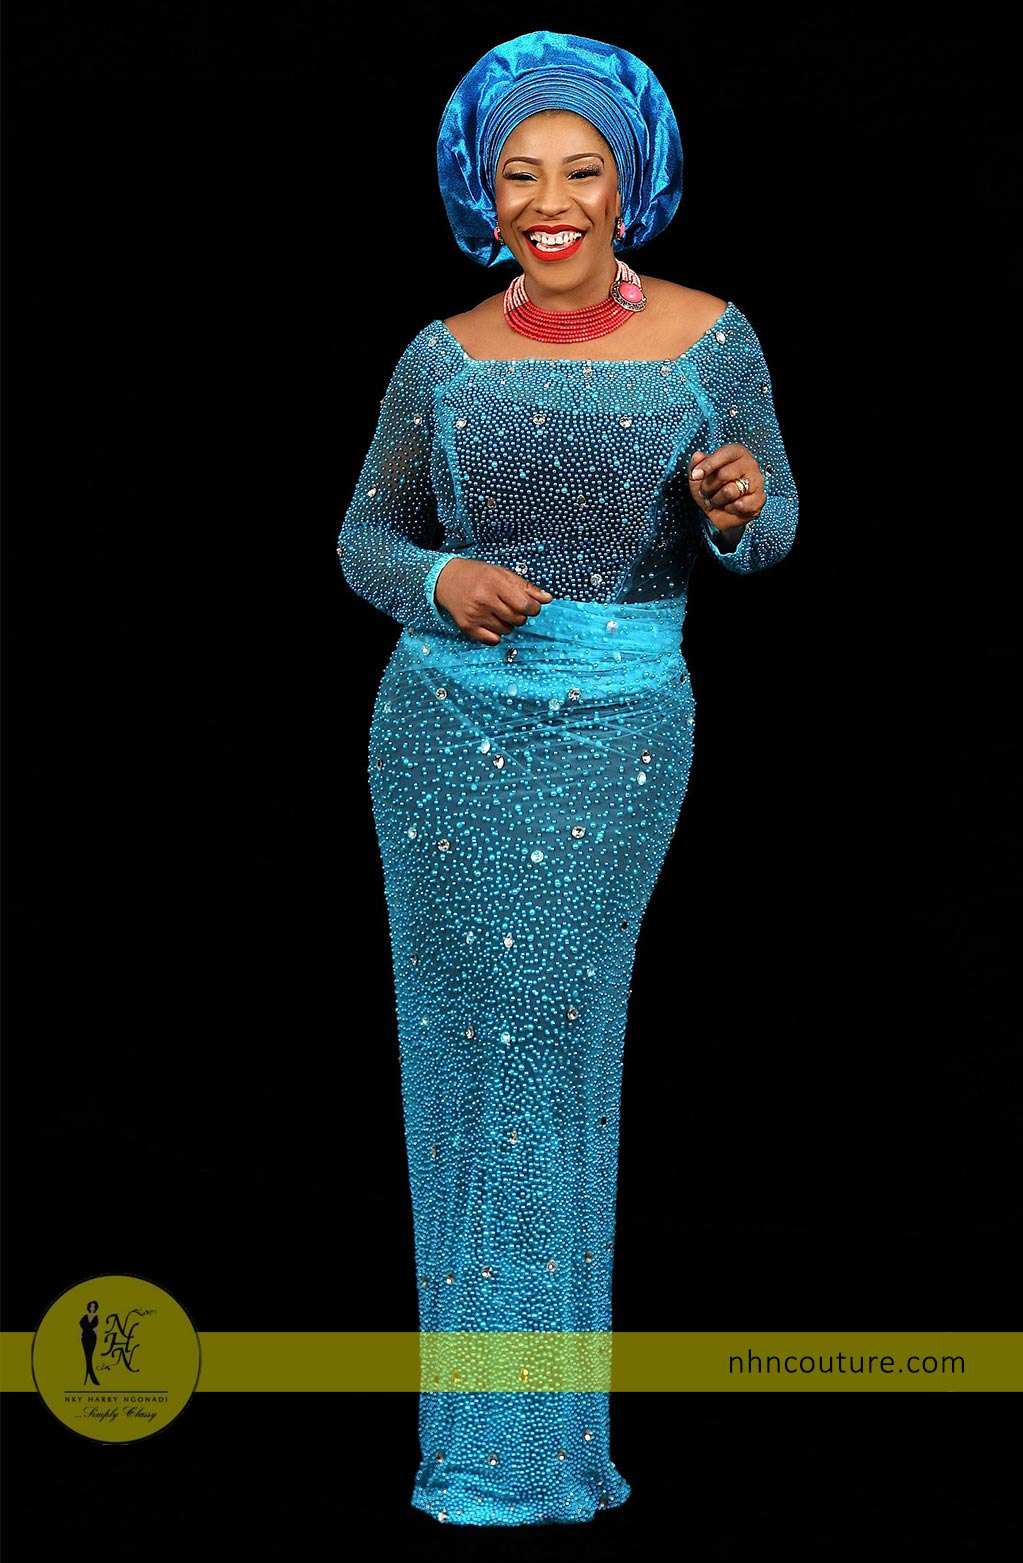 nhn-couture_dressing-with-red_asoebi-style-inspiration_12